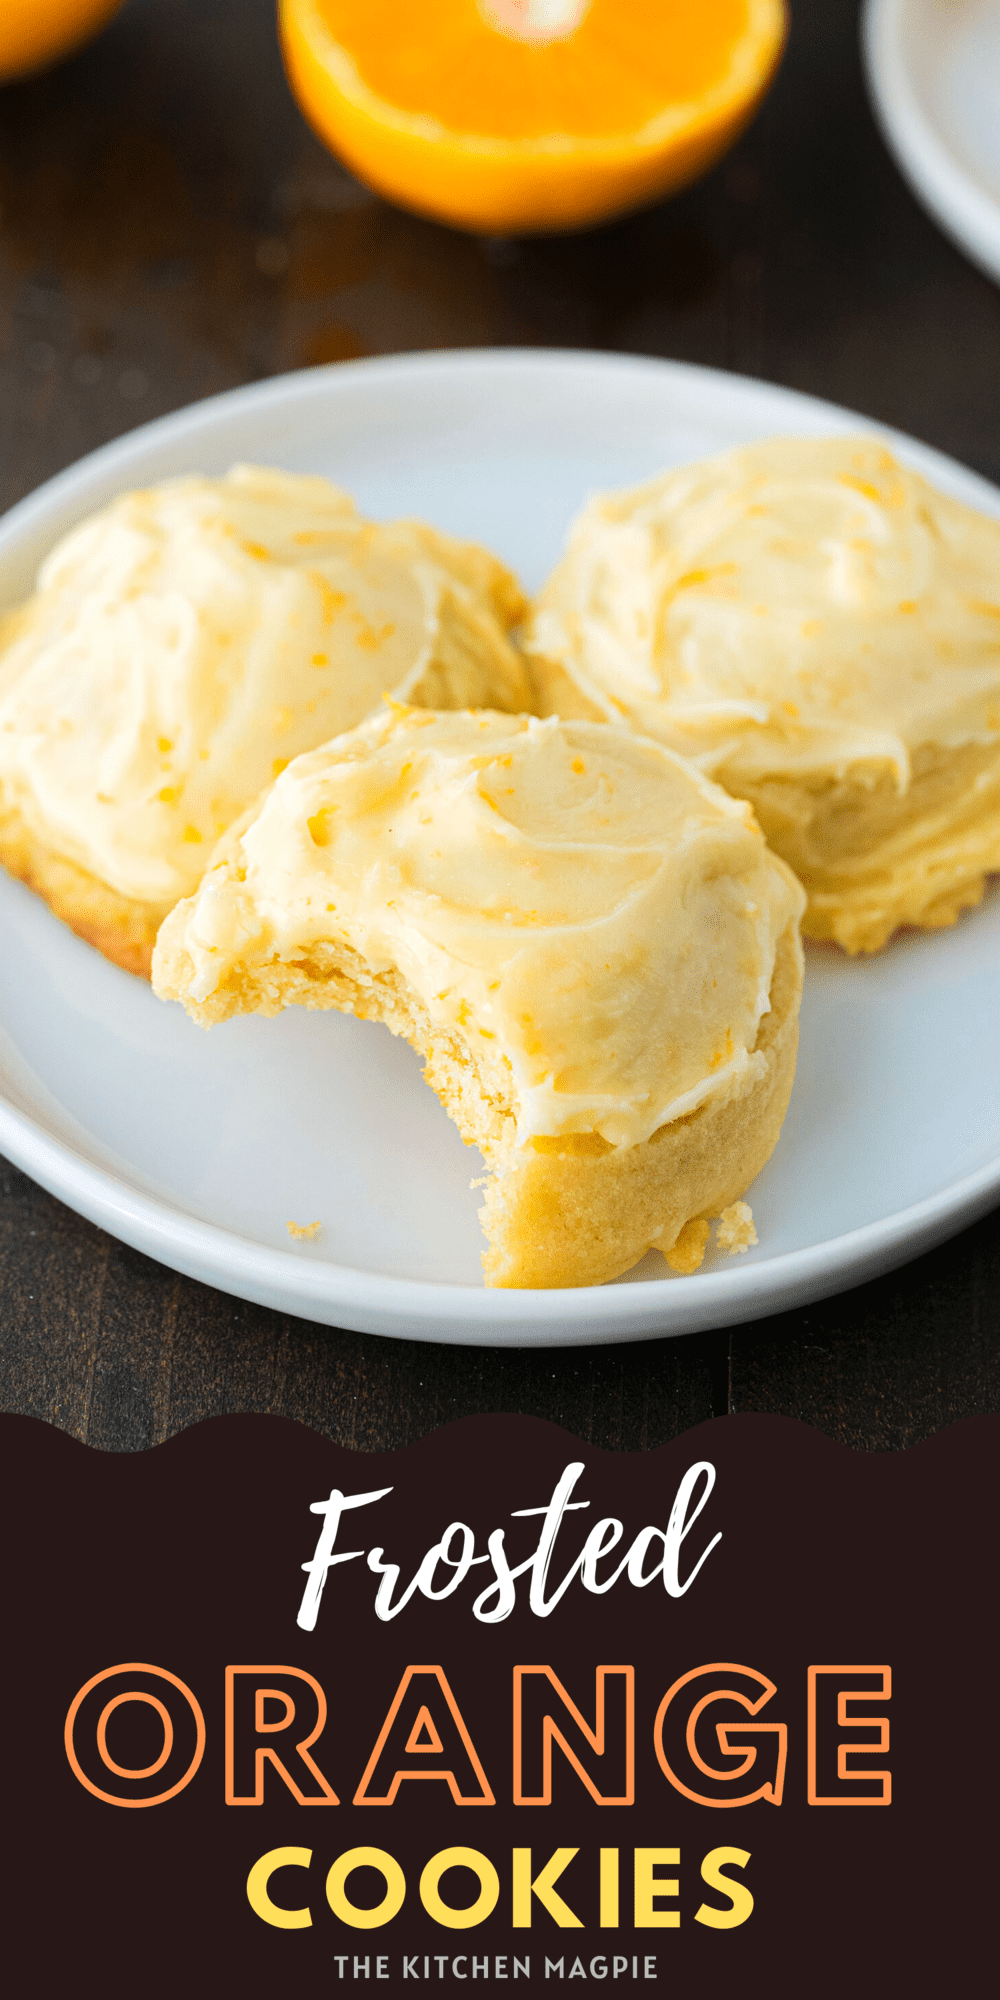 These buttery soft orange cookies are bursting with flavor and are topped with a perfect sweet, tangy orange icing glaze.